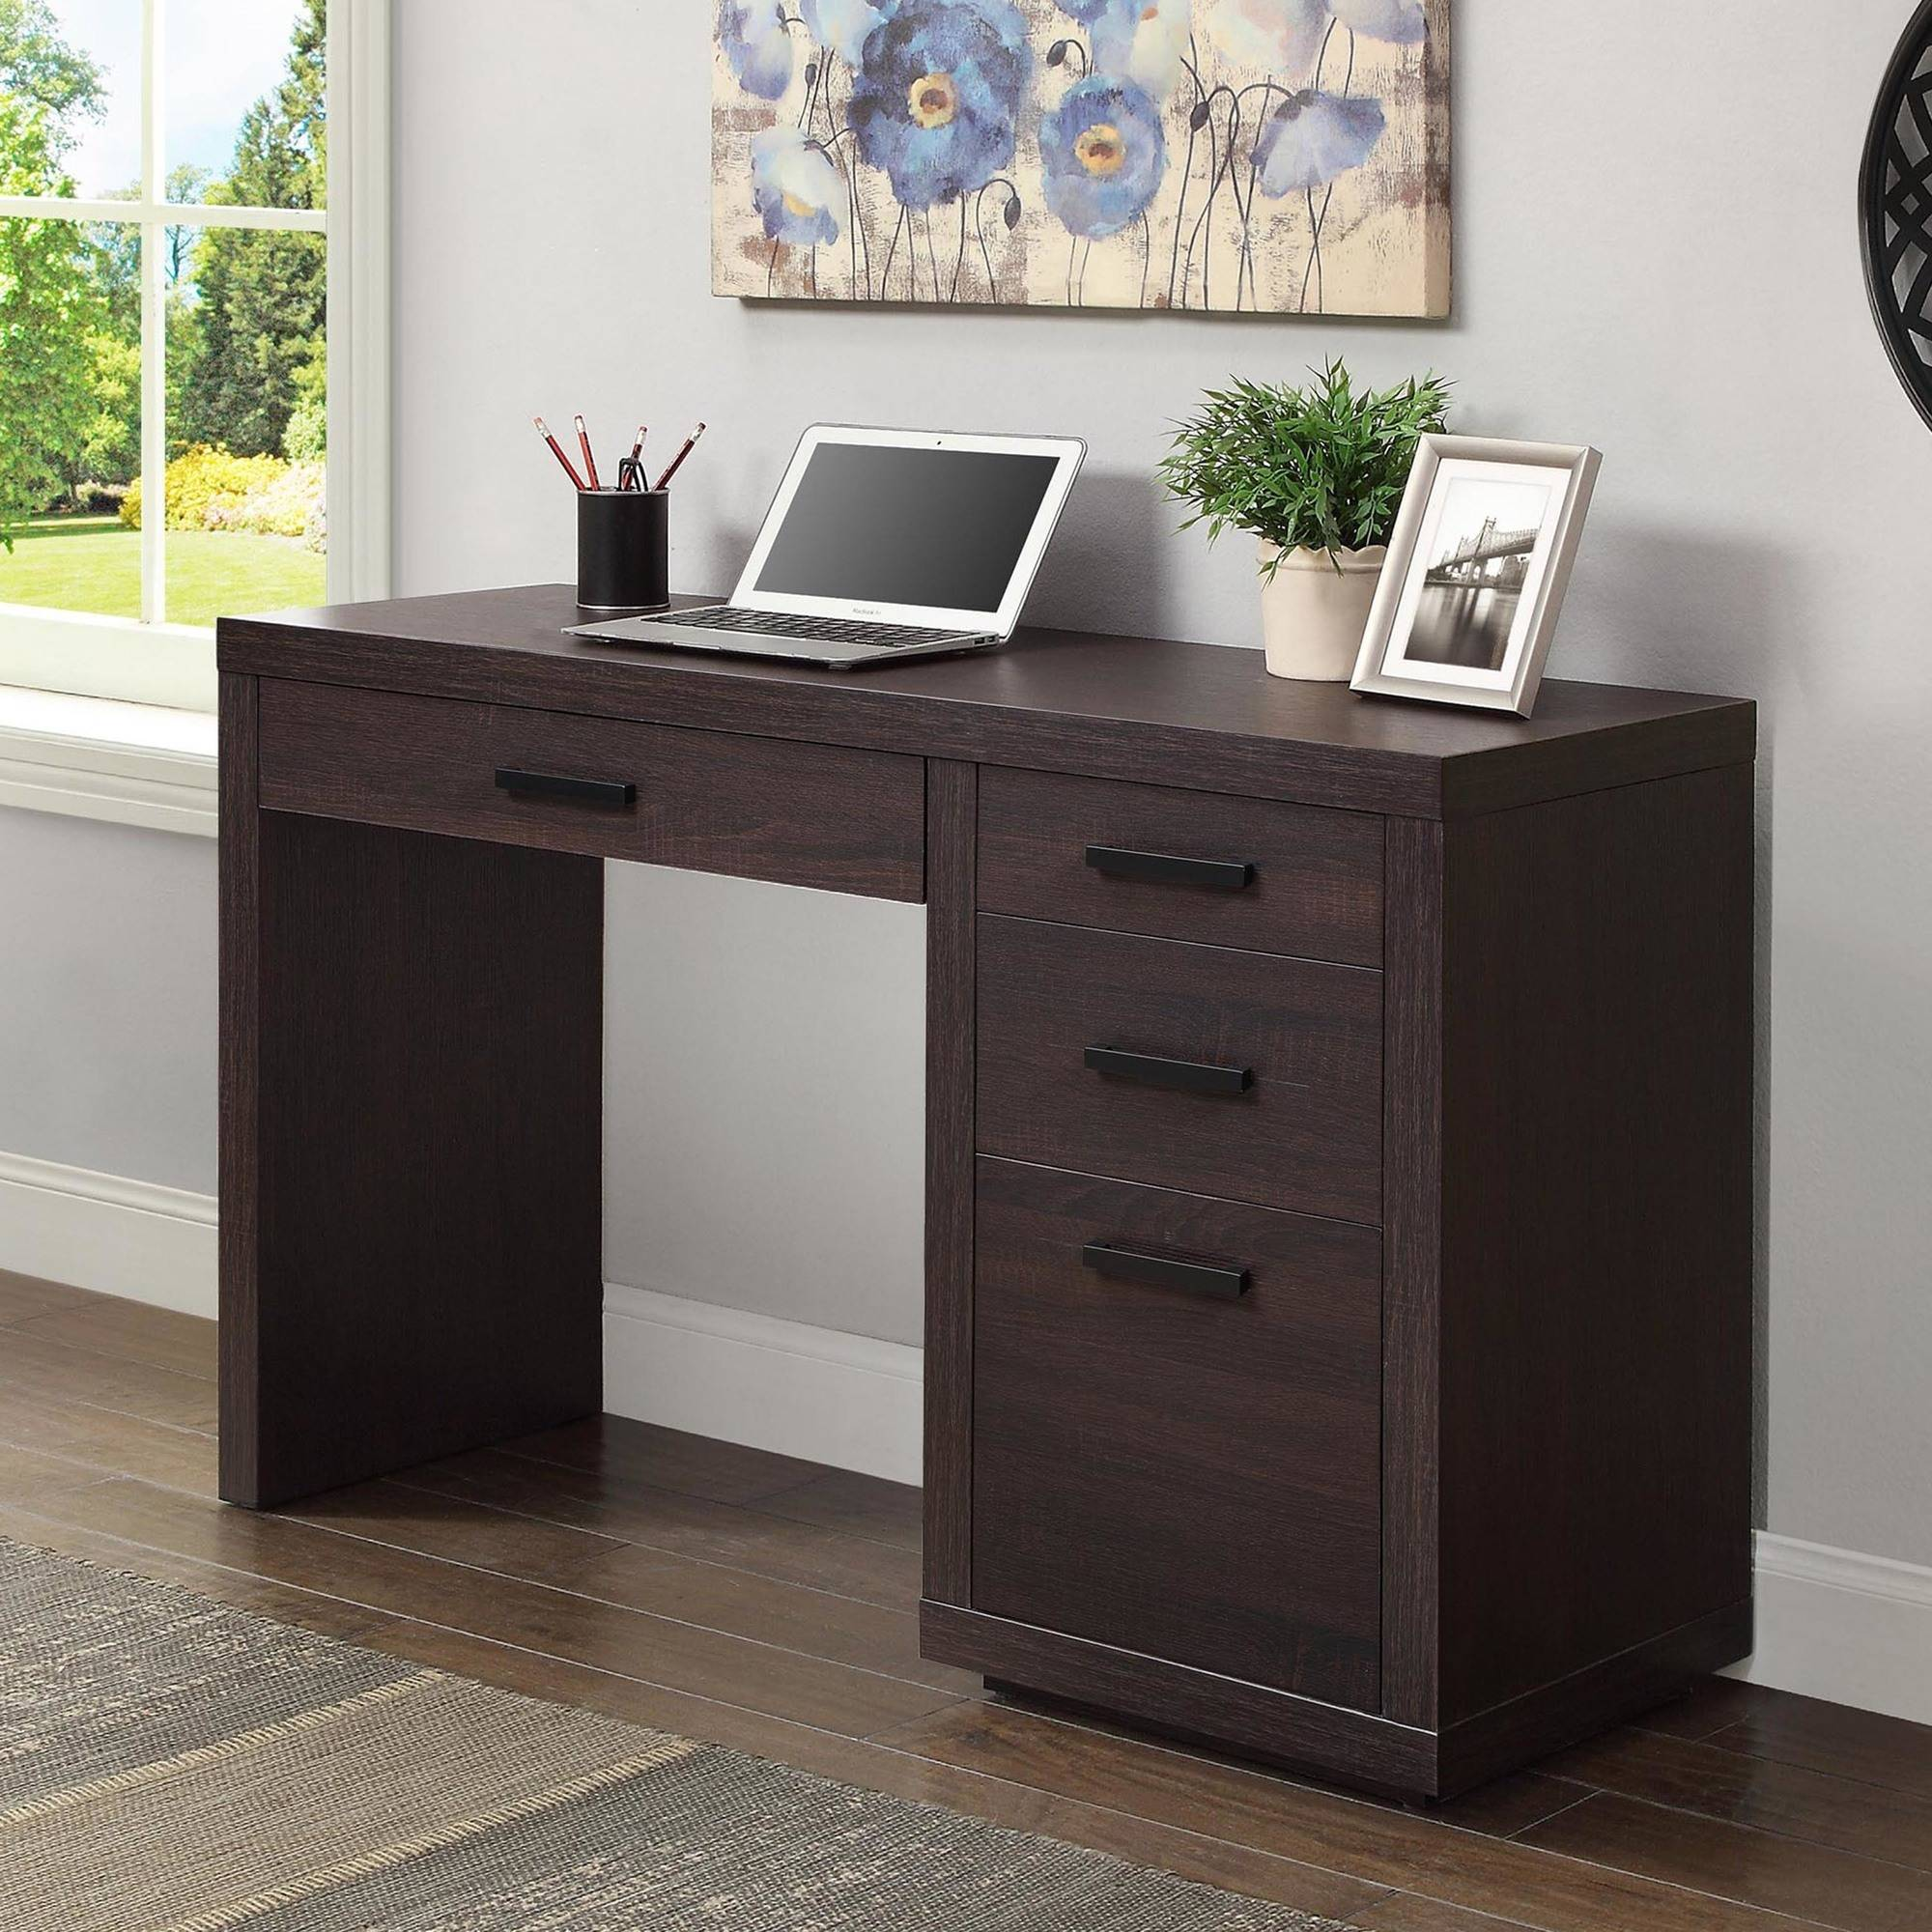 Better Homes U0026 Gardens Steele Writing Desk, Espresso Finish